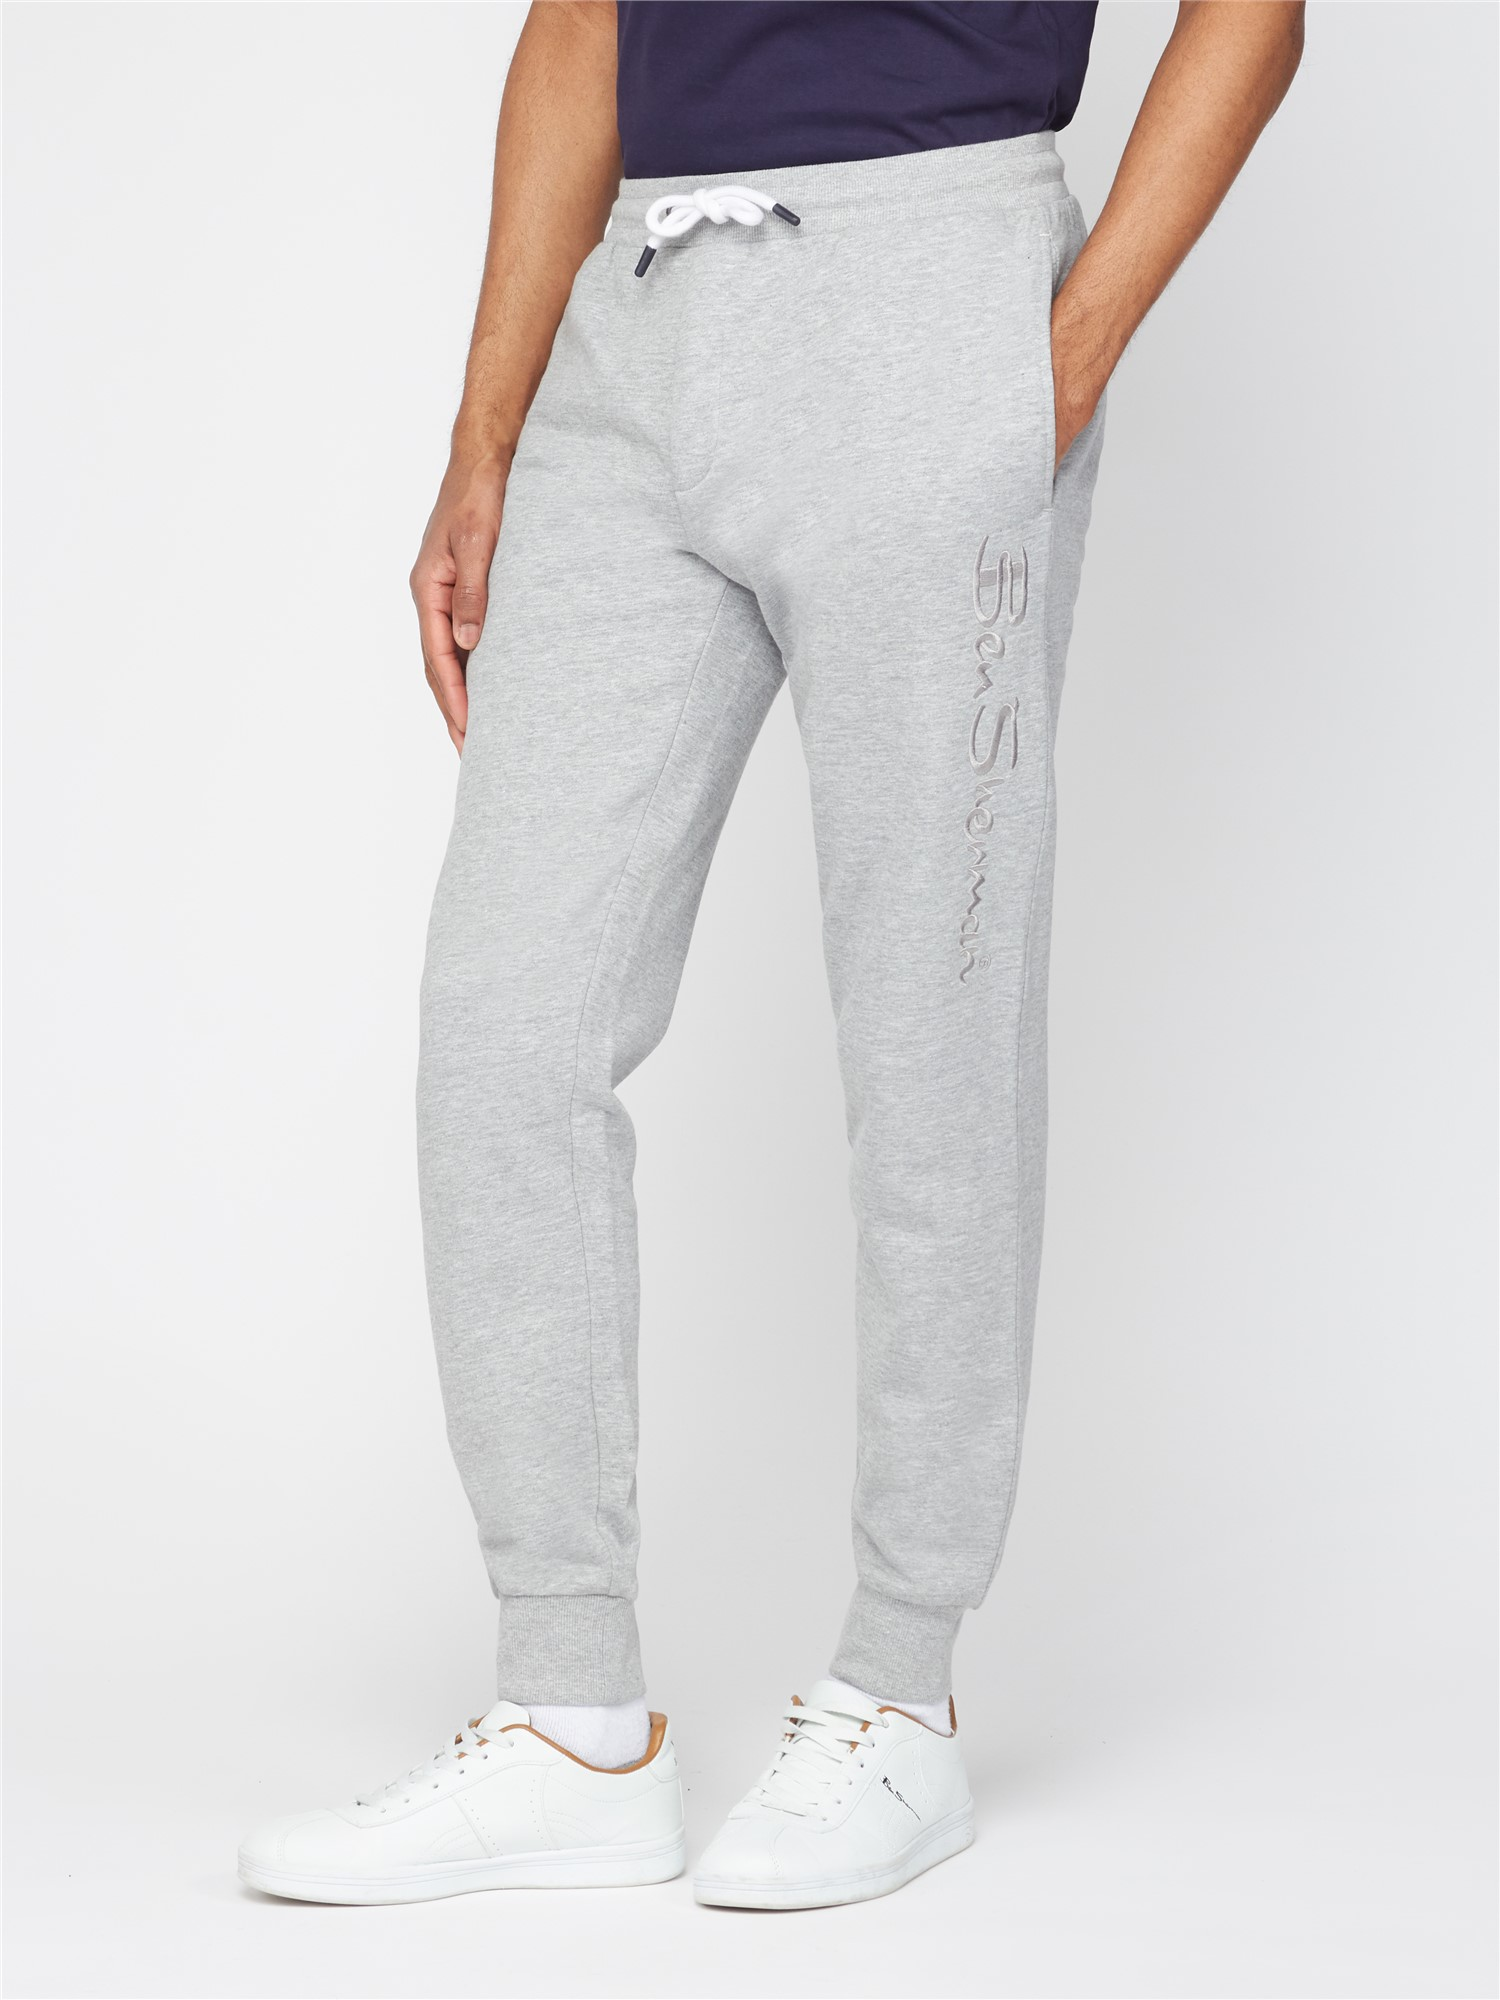 Embroidered Grey Marl Script Joggers